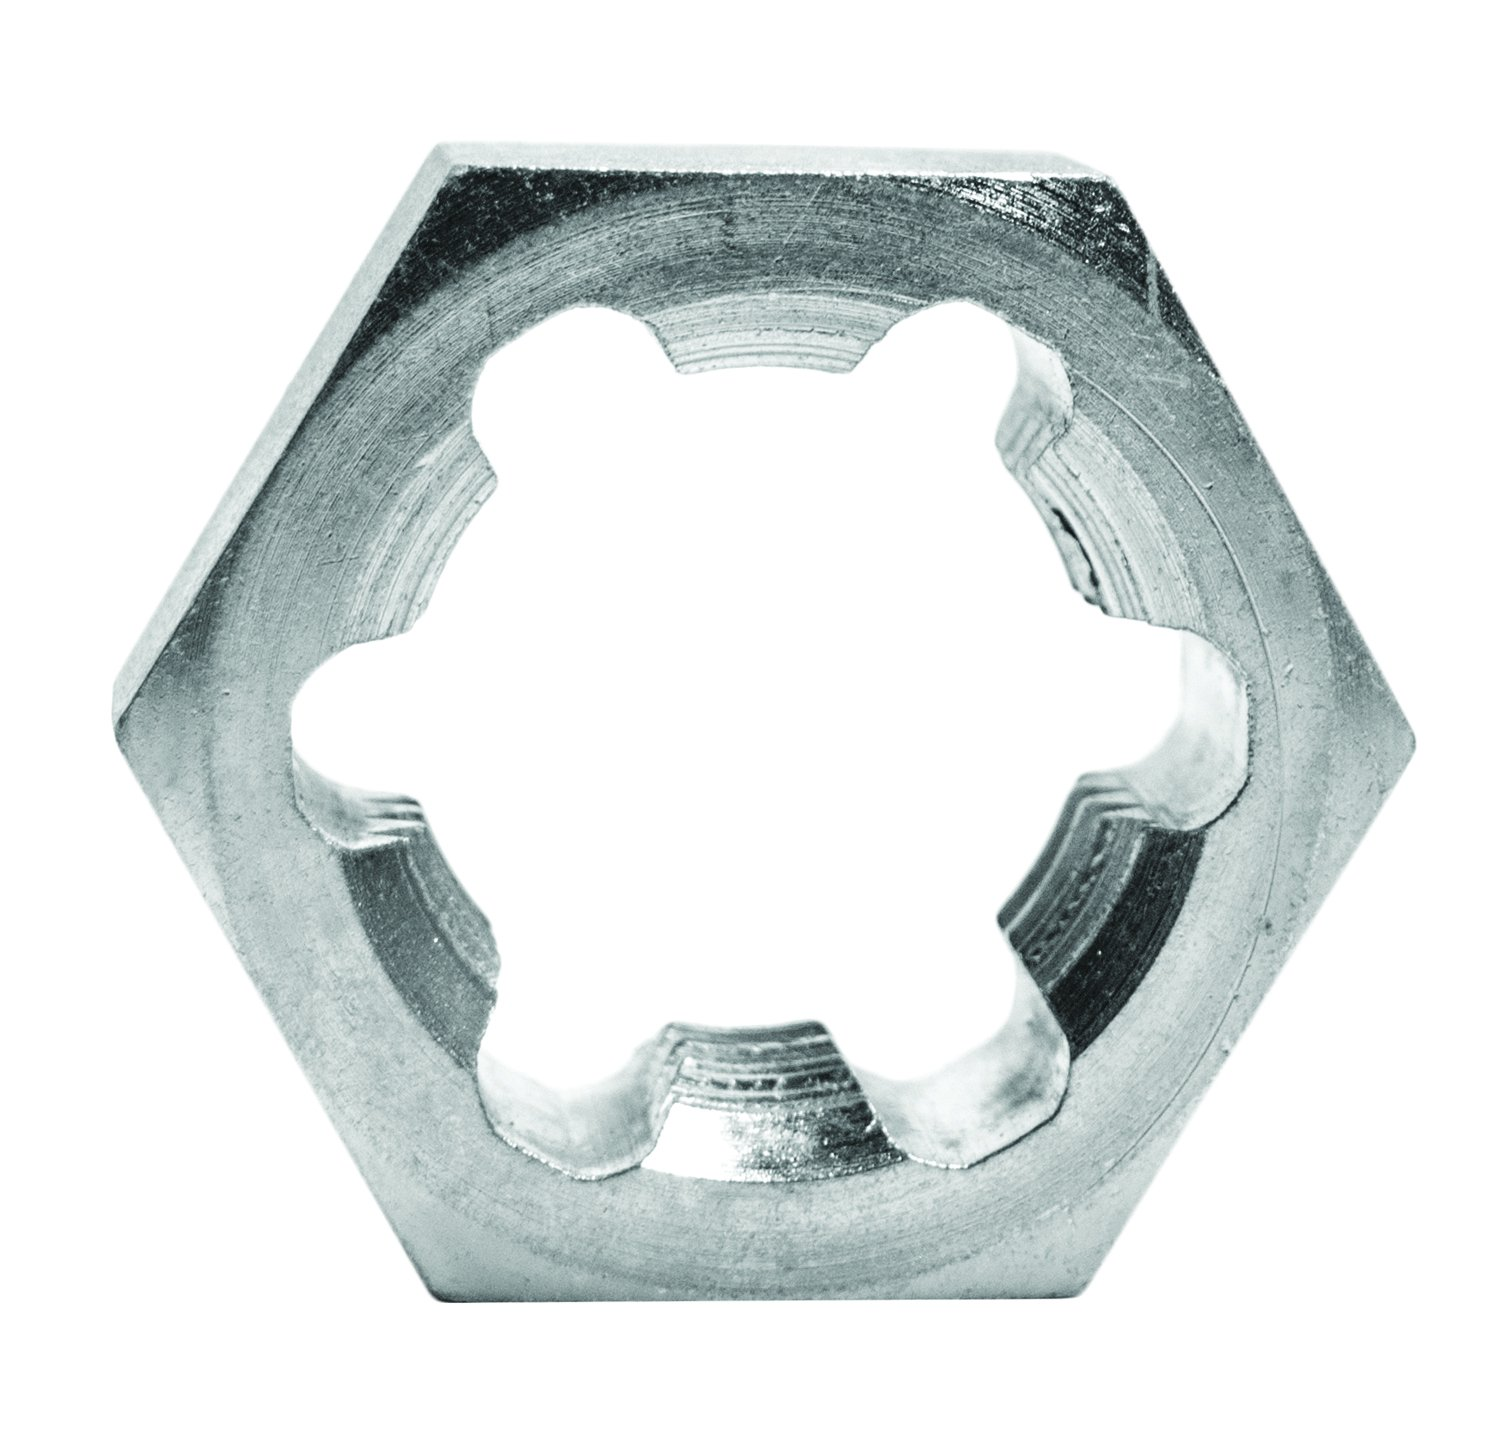 Century Drill & Tool 92920 Rethreading Hexagon Die, 1-14 NF